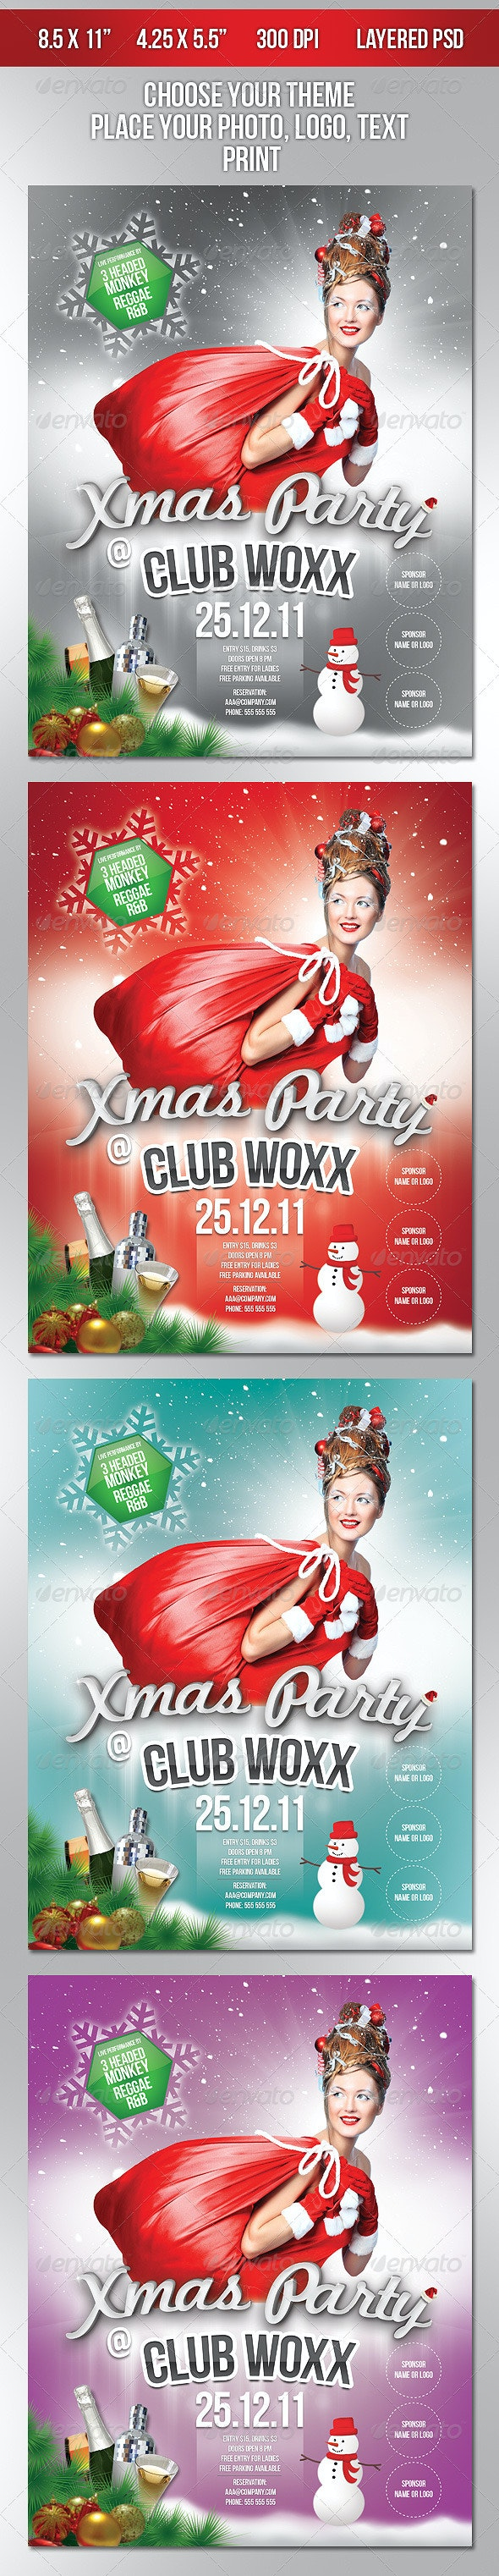 Xmas Party @ Club Woxx - Clubs & Parties Events